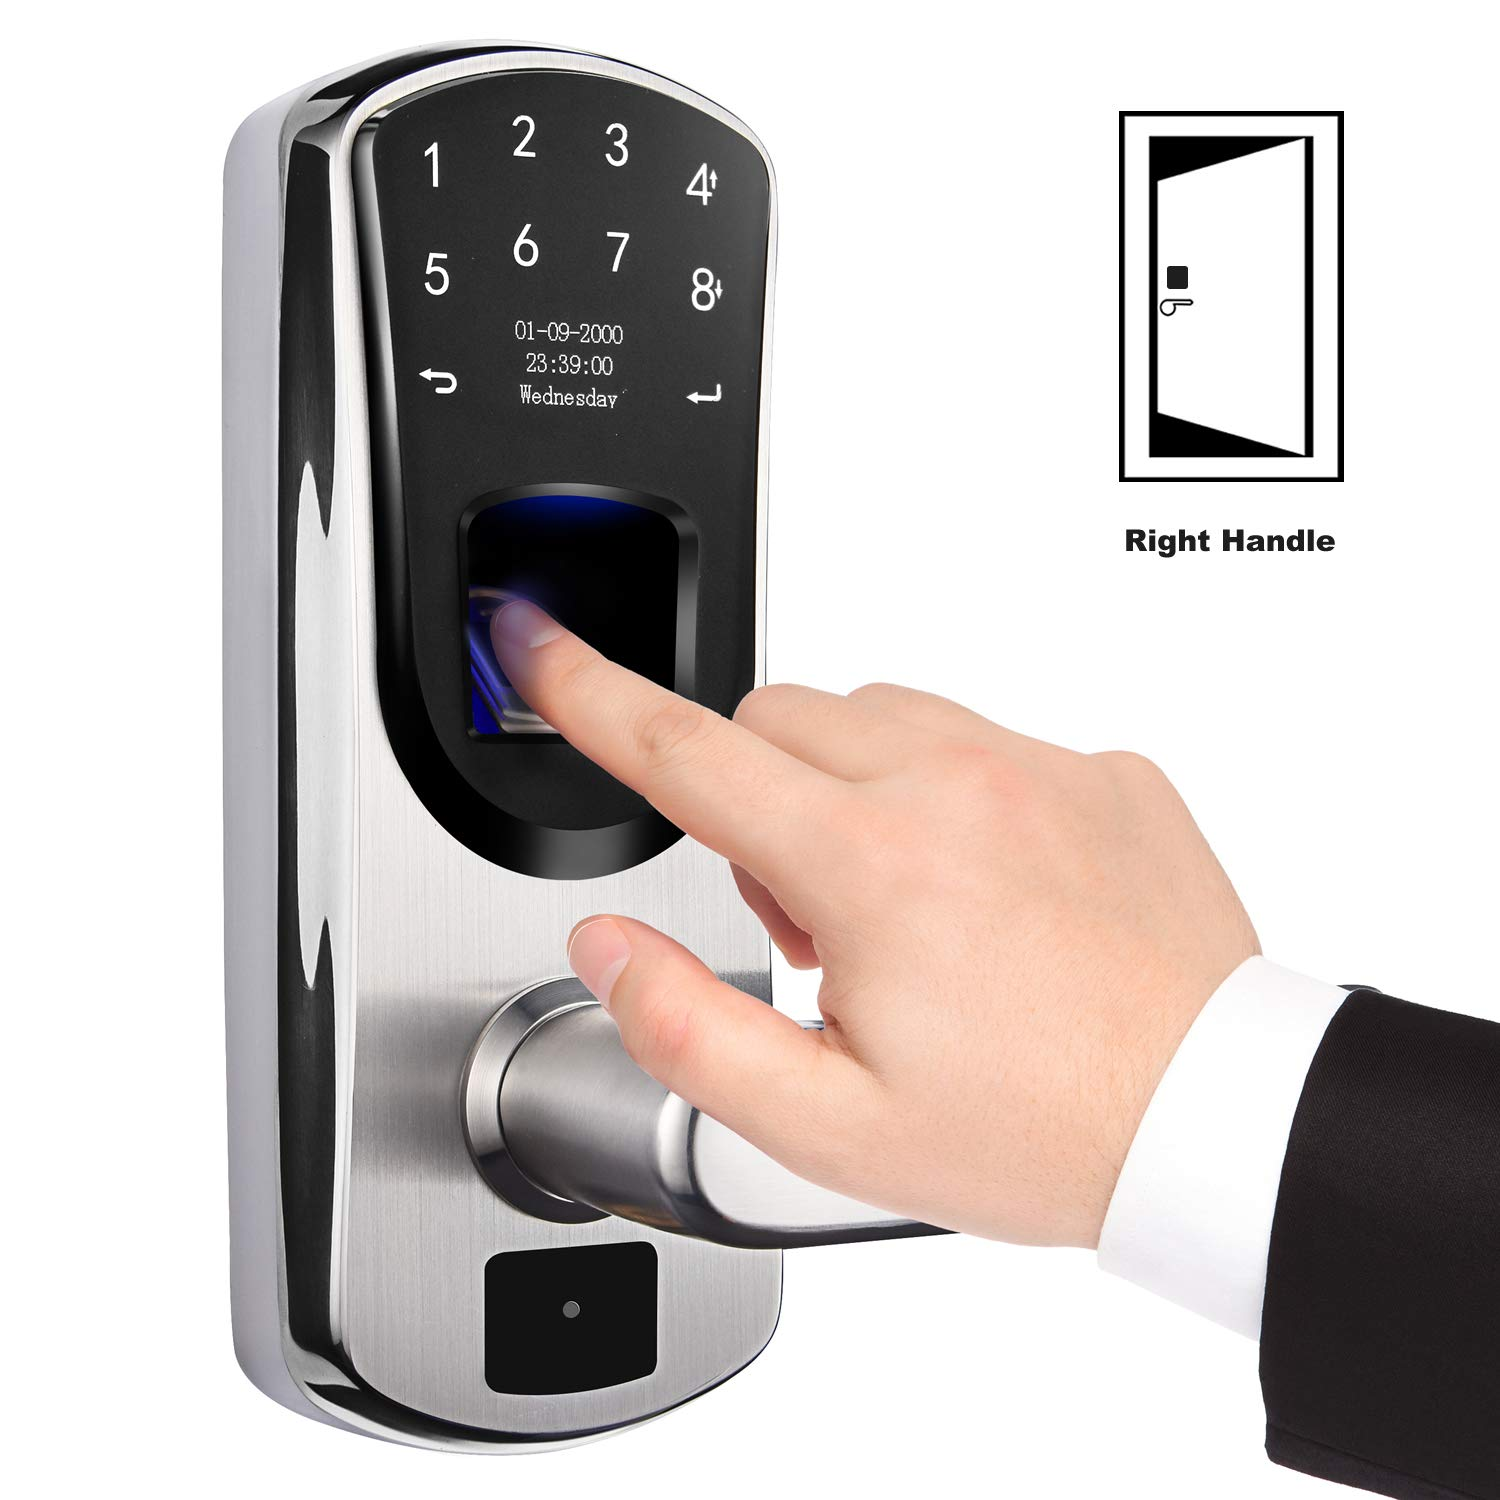 weJupit V8 Smart Lock, Fingerprint and Touchscreen Keyless Stainless Steel Lever Door Lock, Password Lock with Anti-peep Code, Backup Mechanical Key